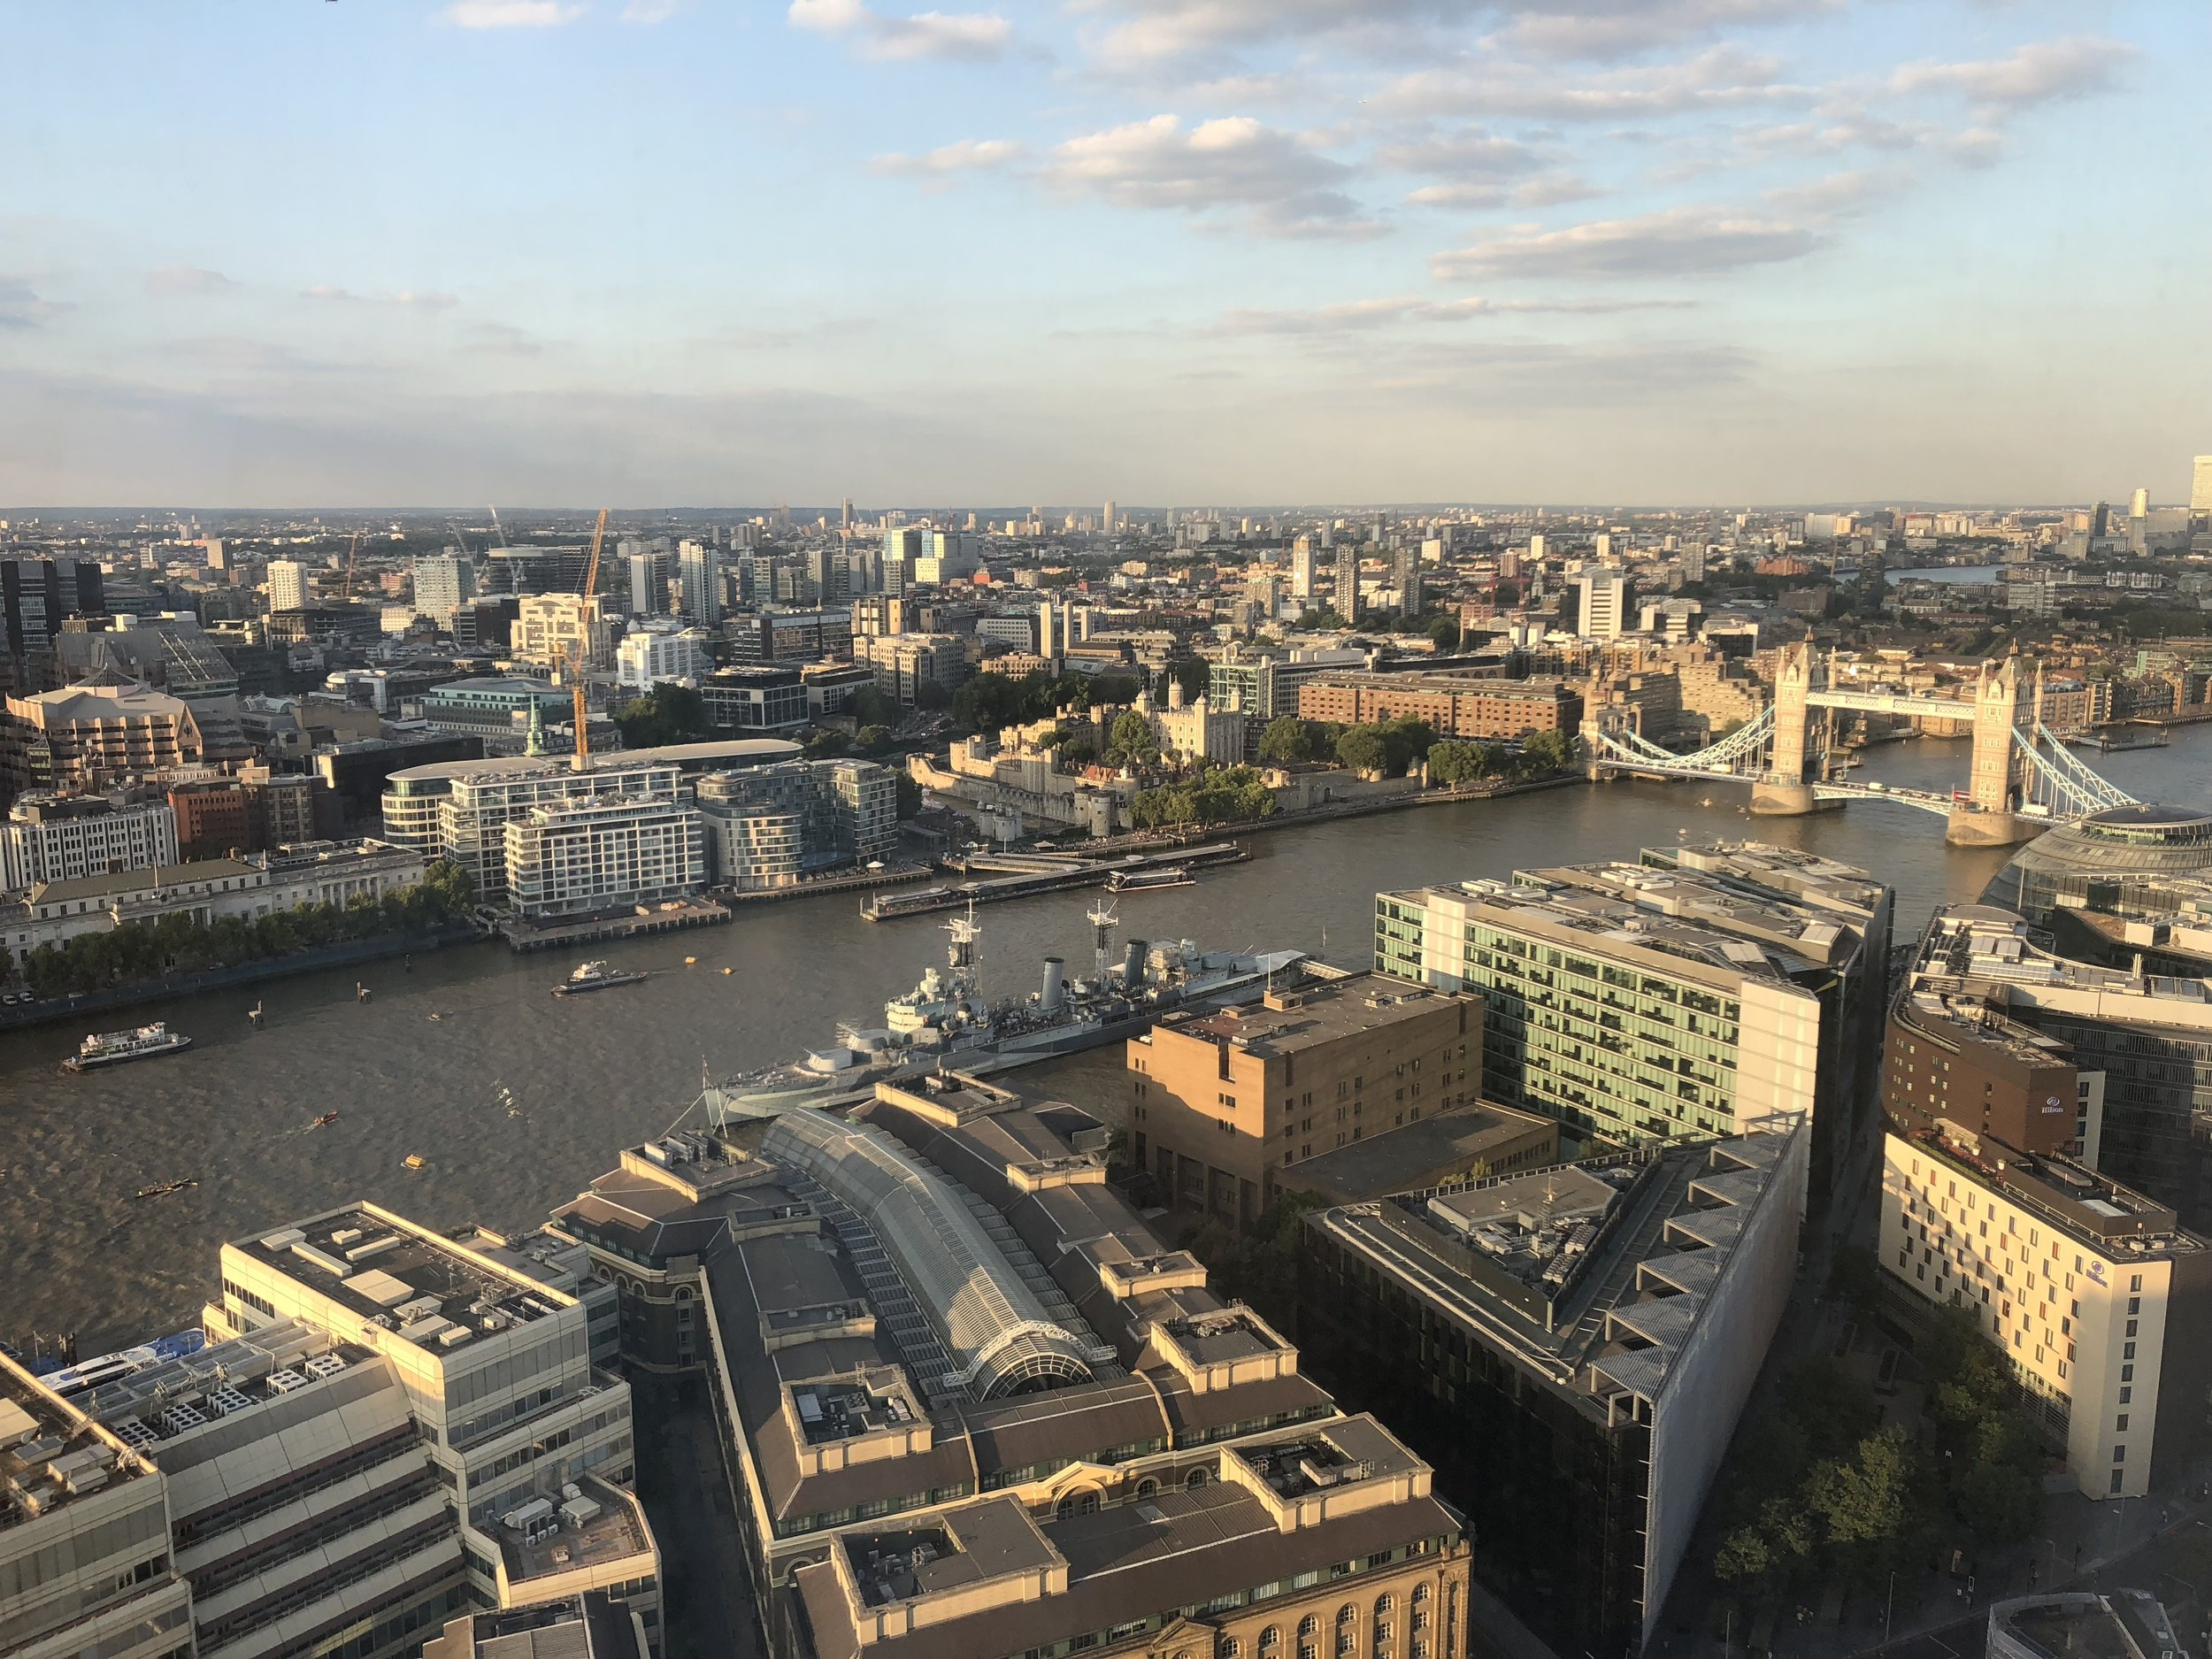 Sunset view from the 32nd floor of The Shard. Drinks ain't cheap, but the view is -- priceless.